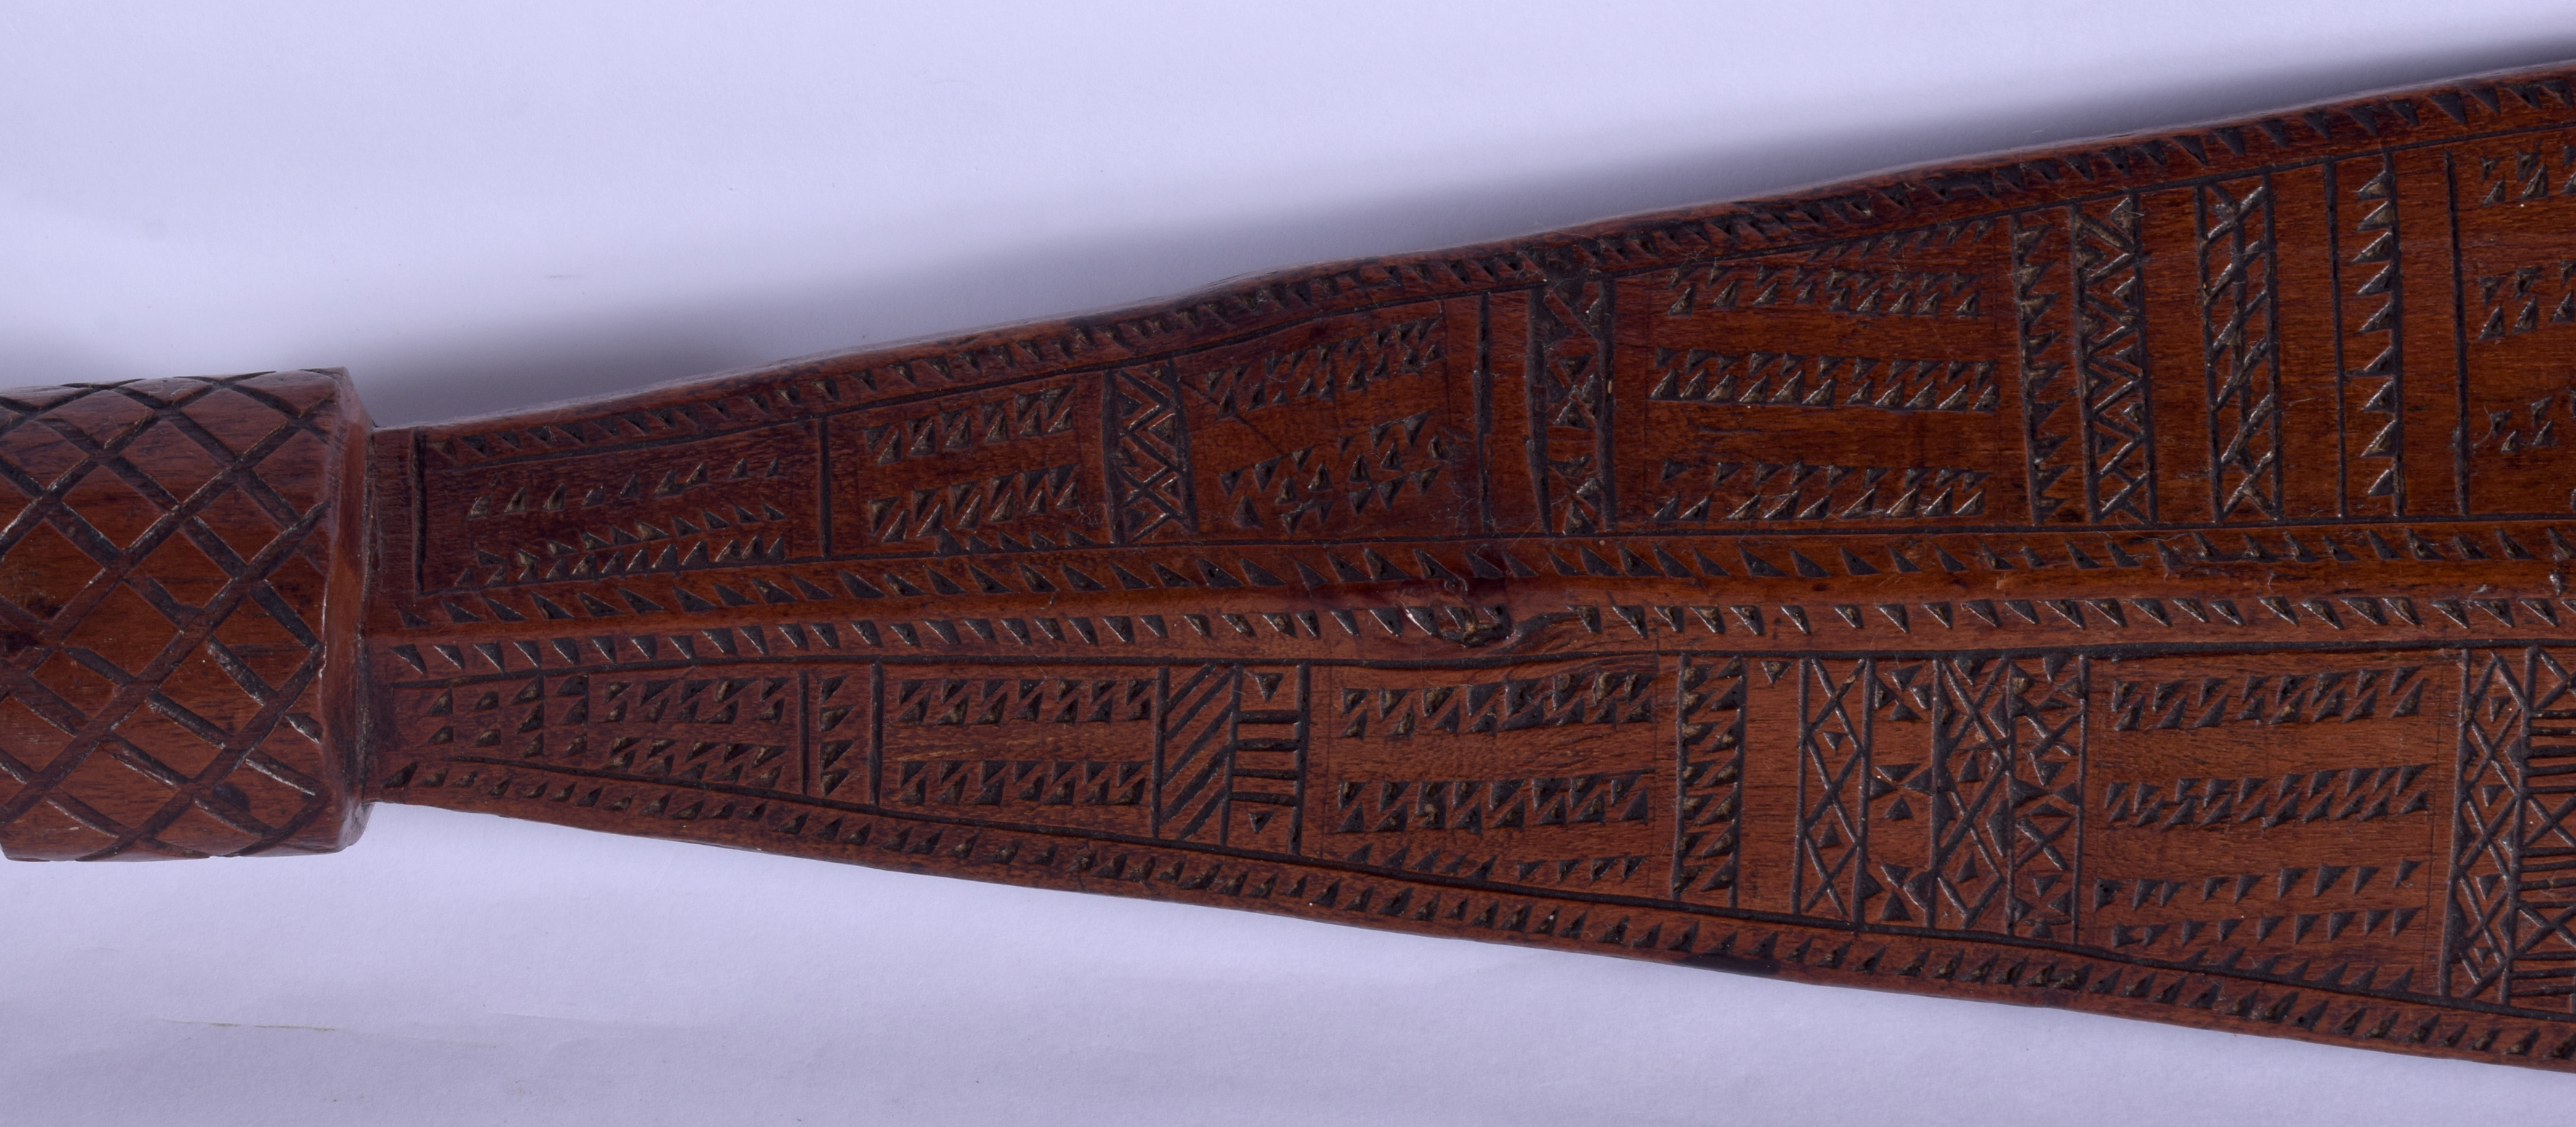 A 19TH CENTURY TONGAN SAMOAN CARVED TRIBAL CLUB decorated with geometric motifs. 68 cm long. - Image 3 of 8